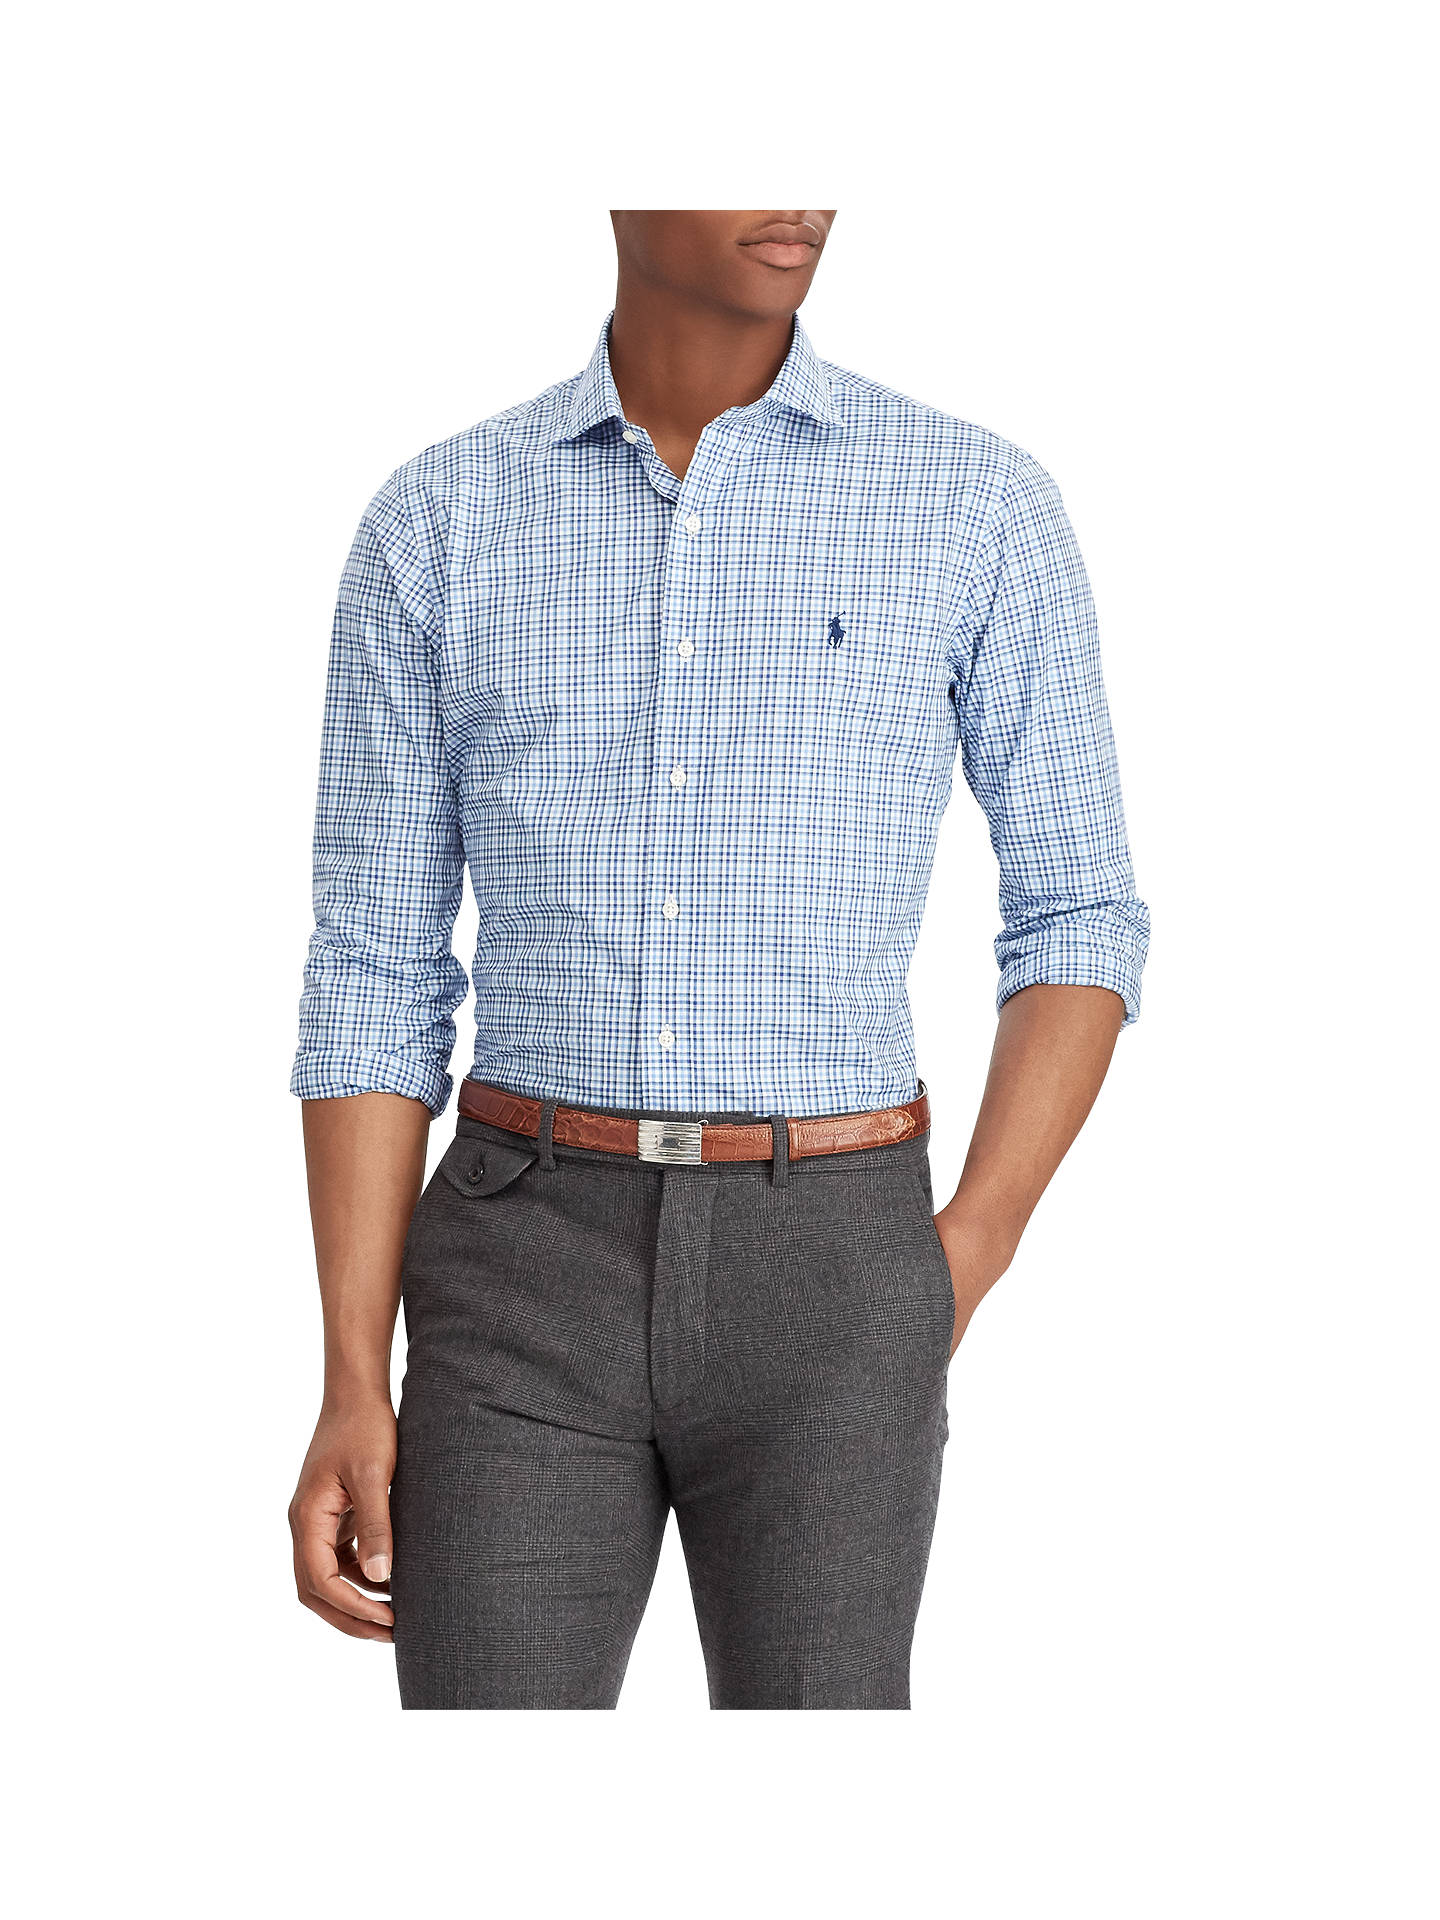 BuyPolo Ralph Lauren Long Sleeve Sport Check Shirt, Azul/White, XXL Online at johnlewis.com